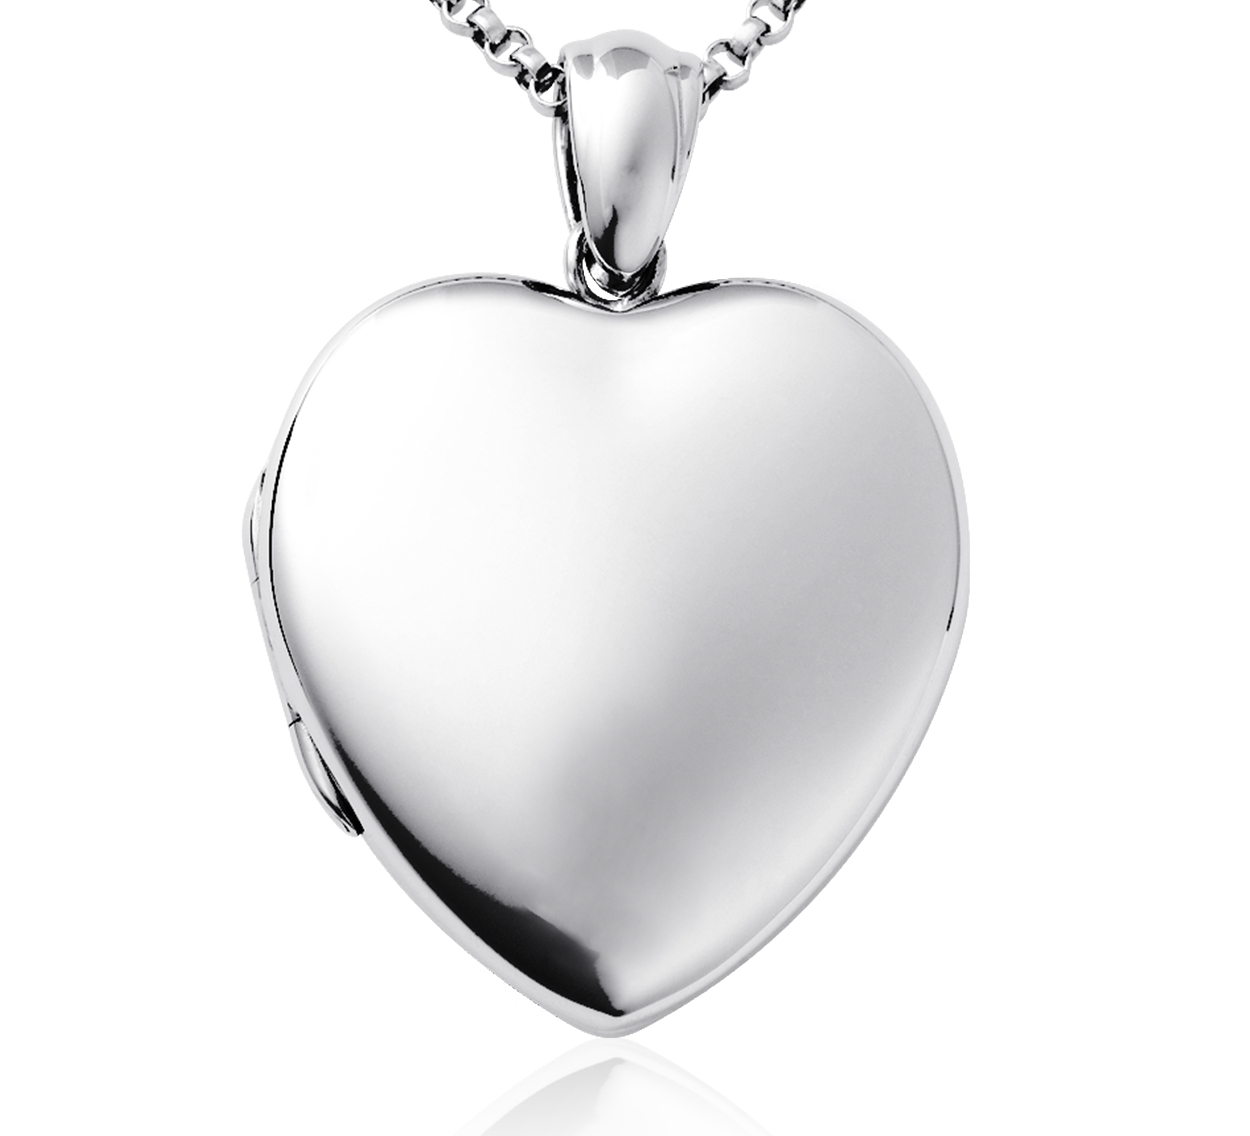 Sweetheart Heirloom Locket in Sterling Silver